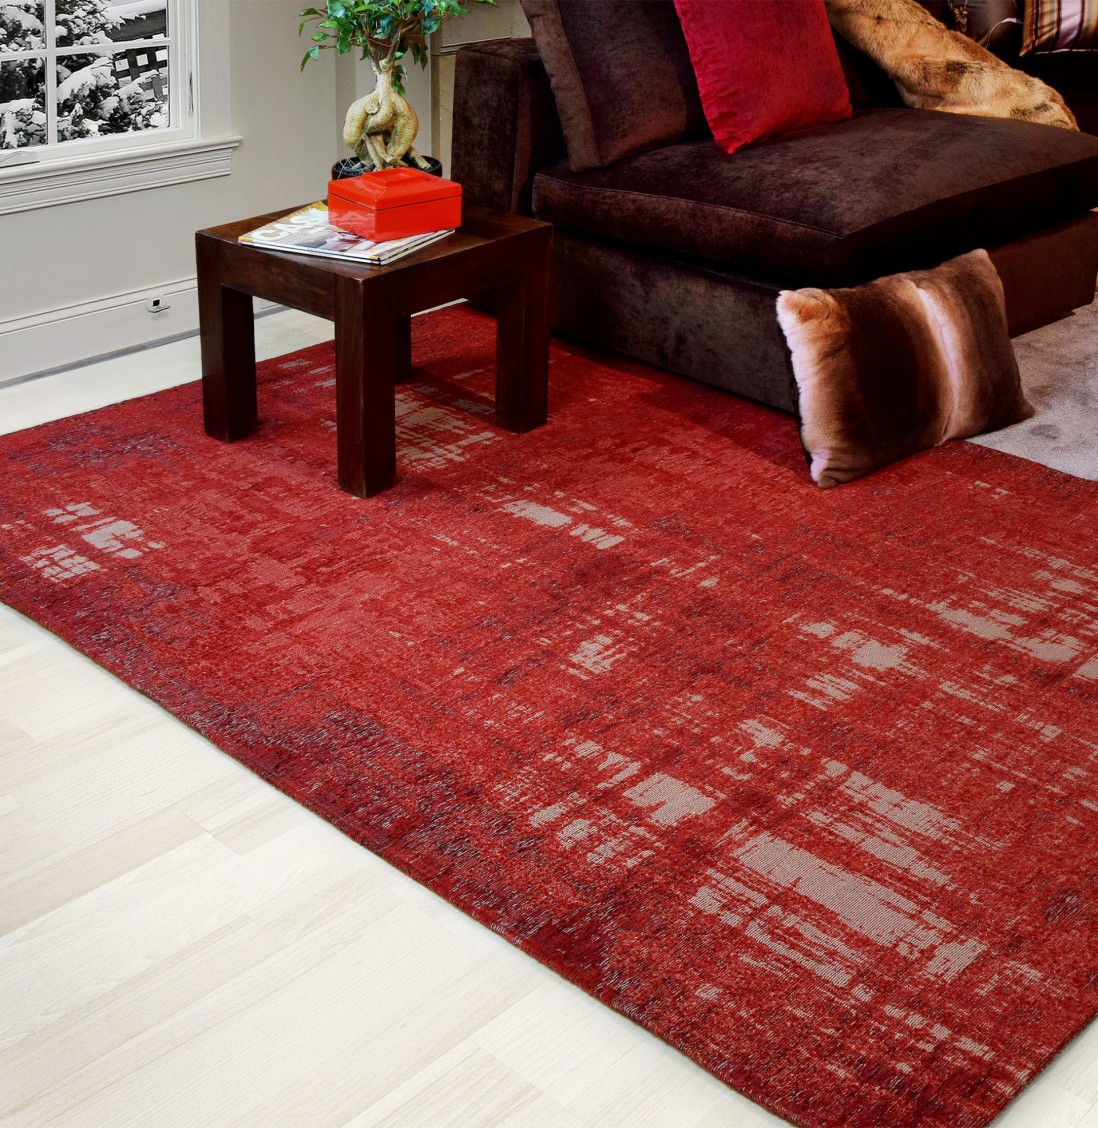 TAPETE ANTIK CHENILLE 140x200 GRUNGE/RED